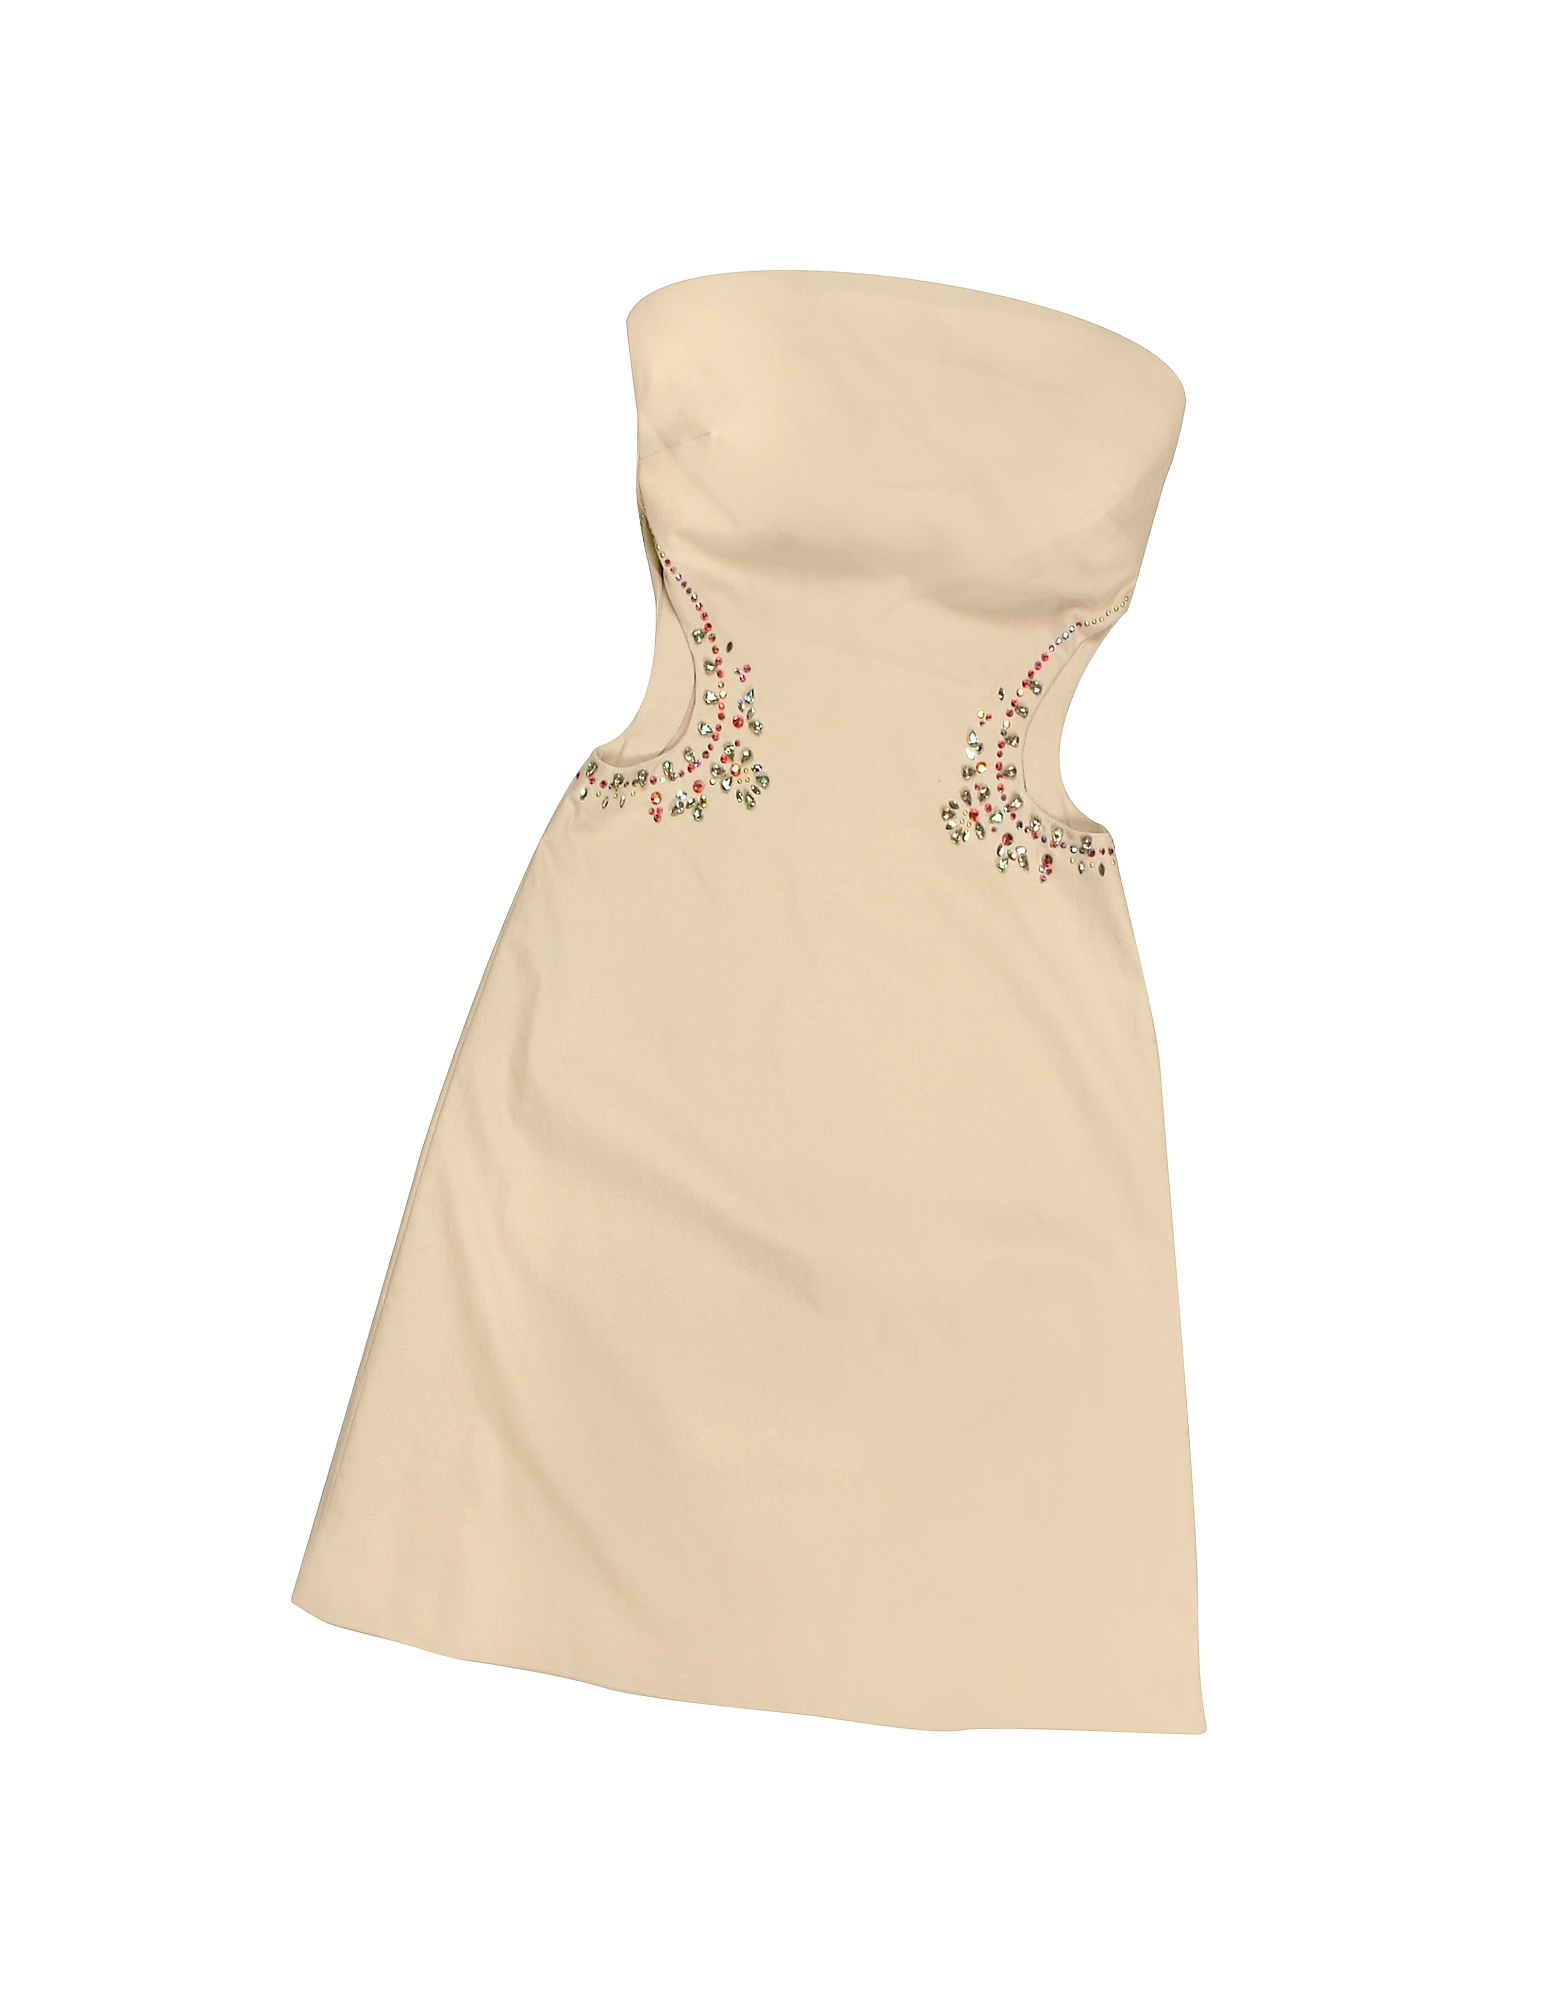 Image of Hafize Ozbudak Designer Tops & Co, Opale Crystal Decorated Cut Out Strapless Dress